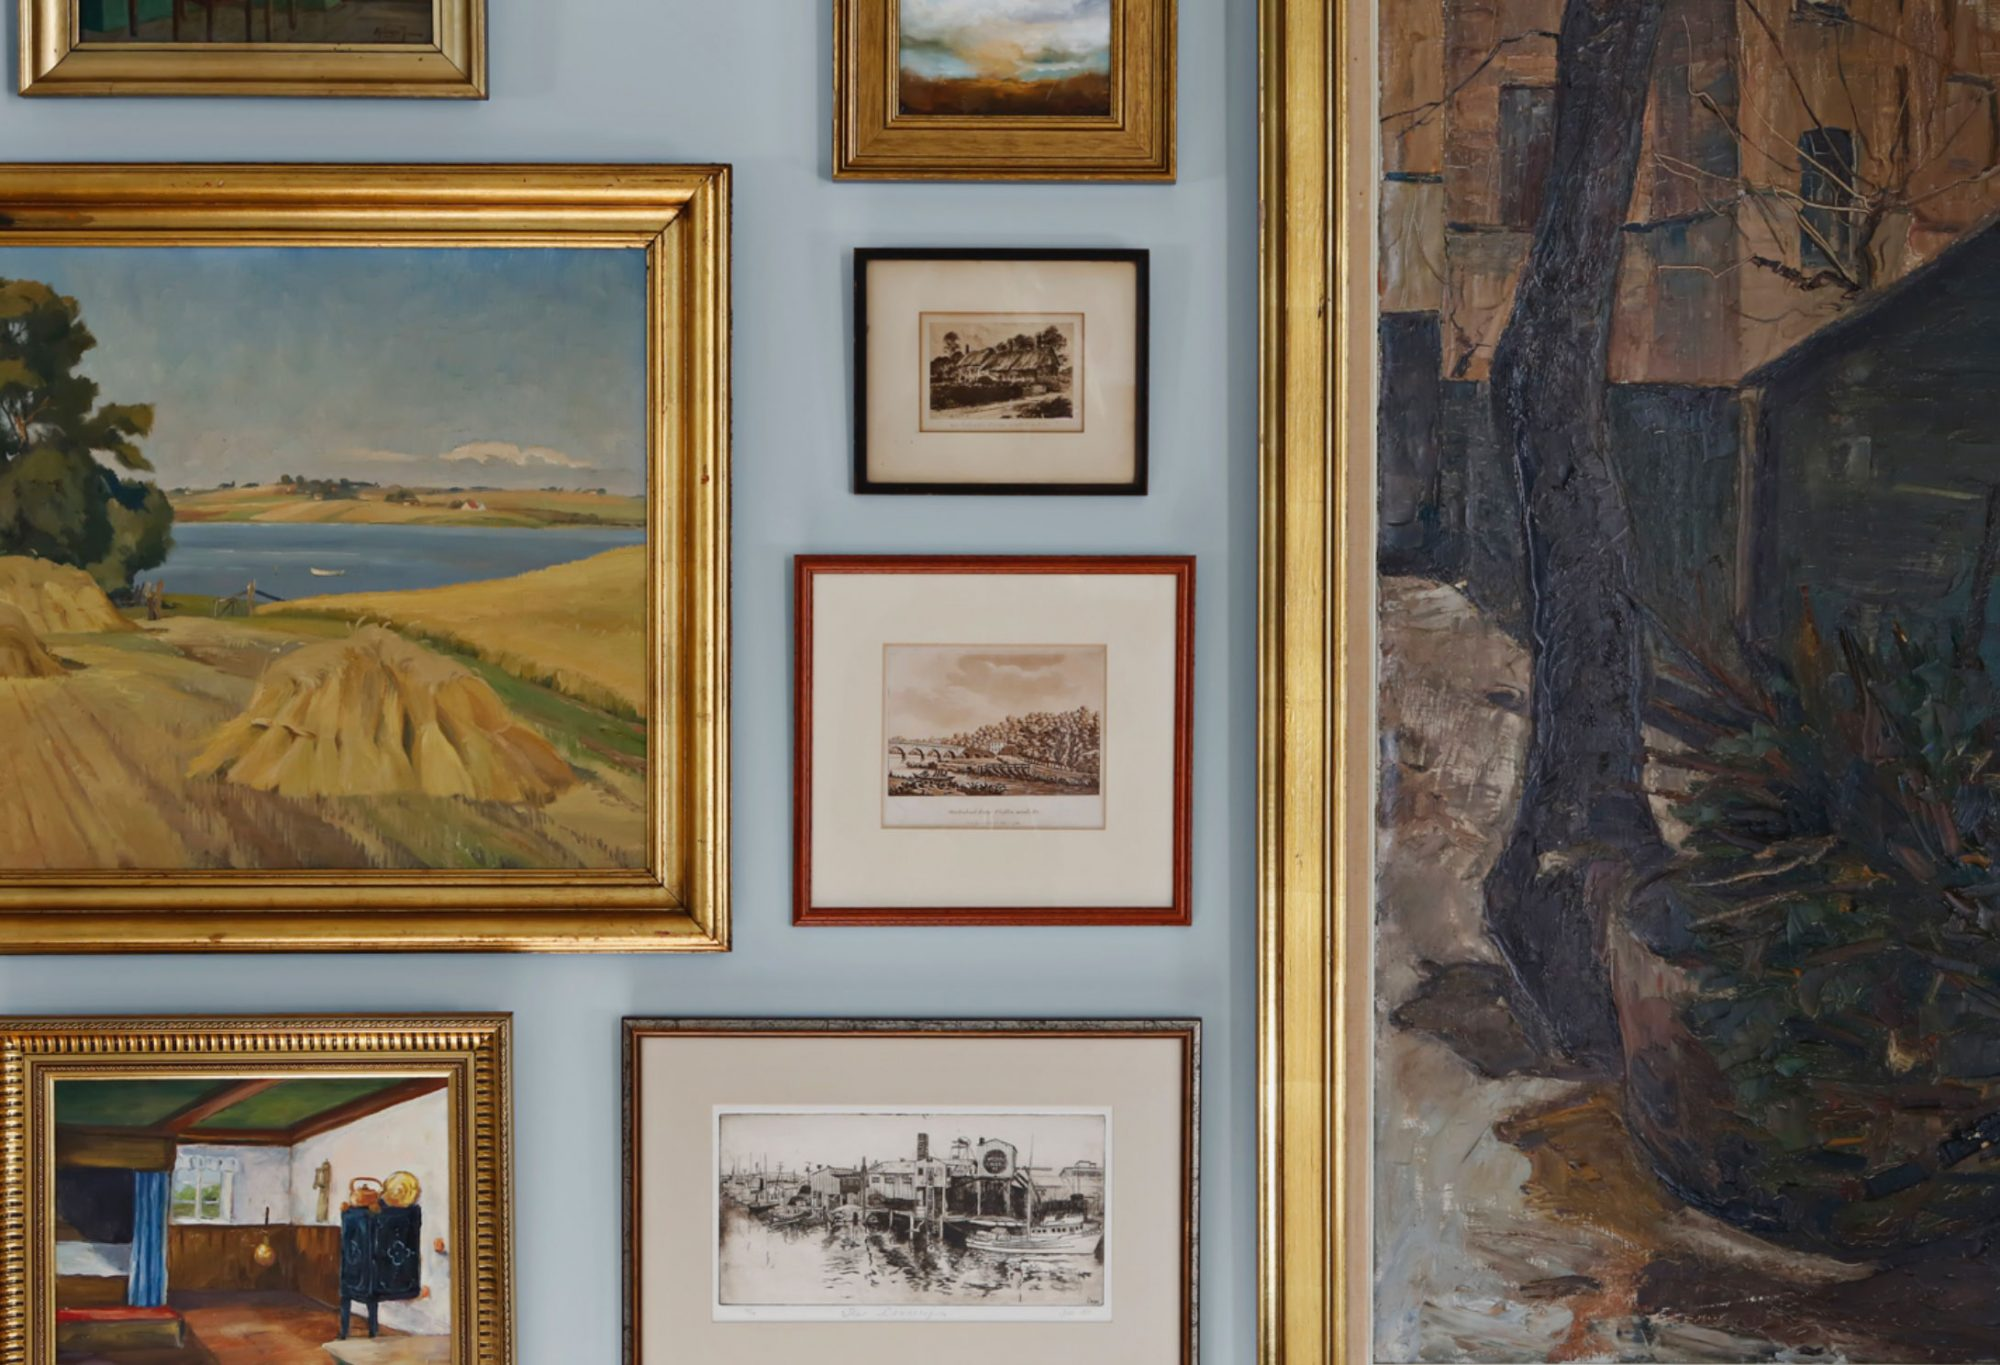 Vignette Wall with Paintings in Gold and Wood Frames